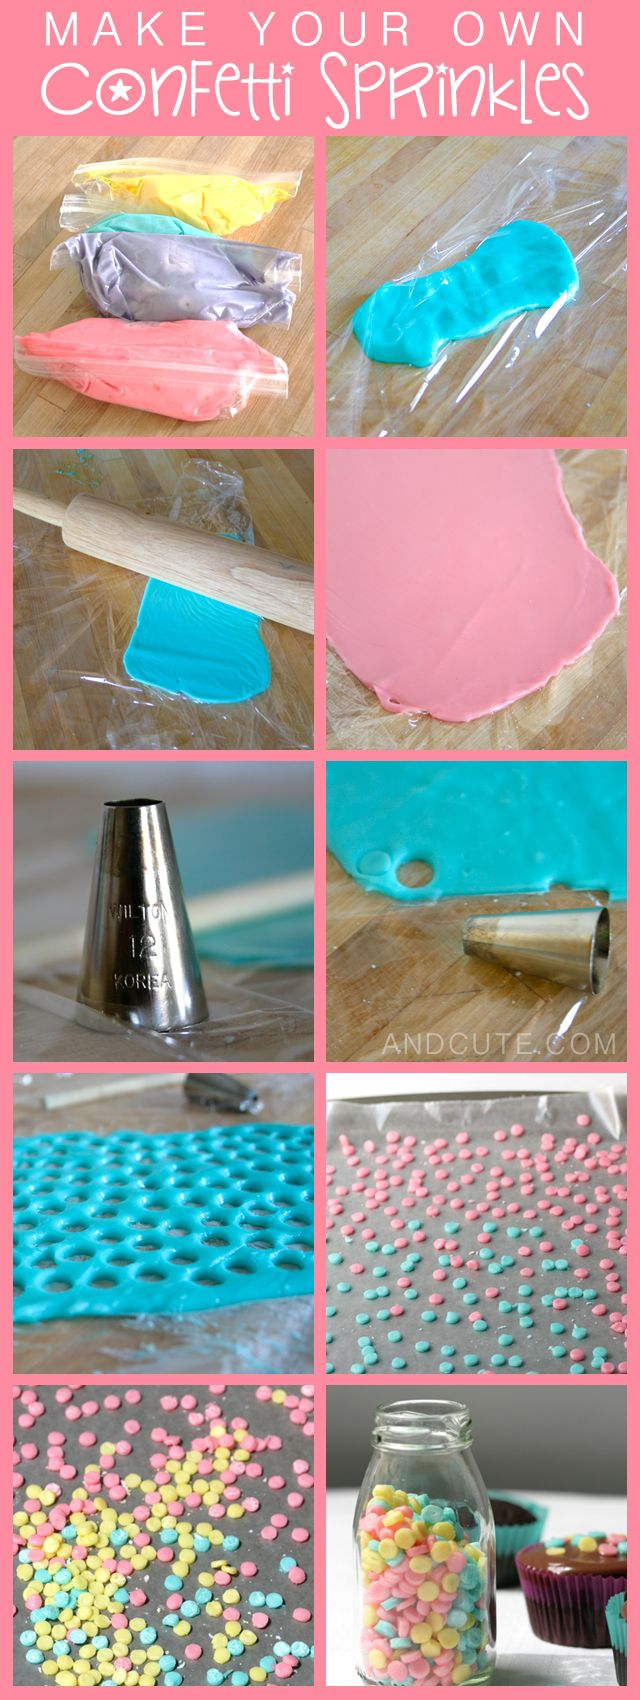 How to make Confetti Sprinkles @Holli Burkart ...this might be cute for the party